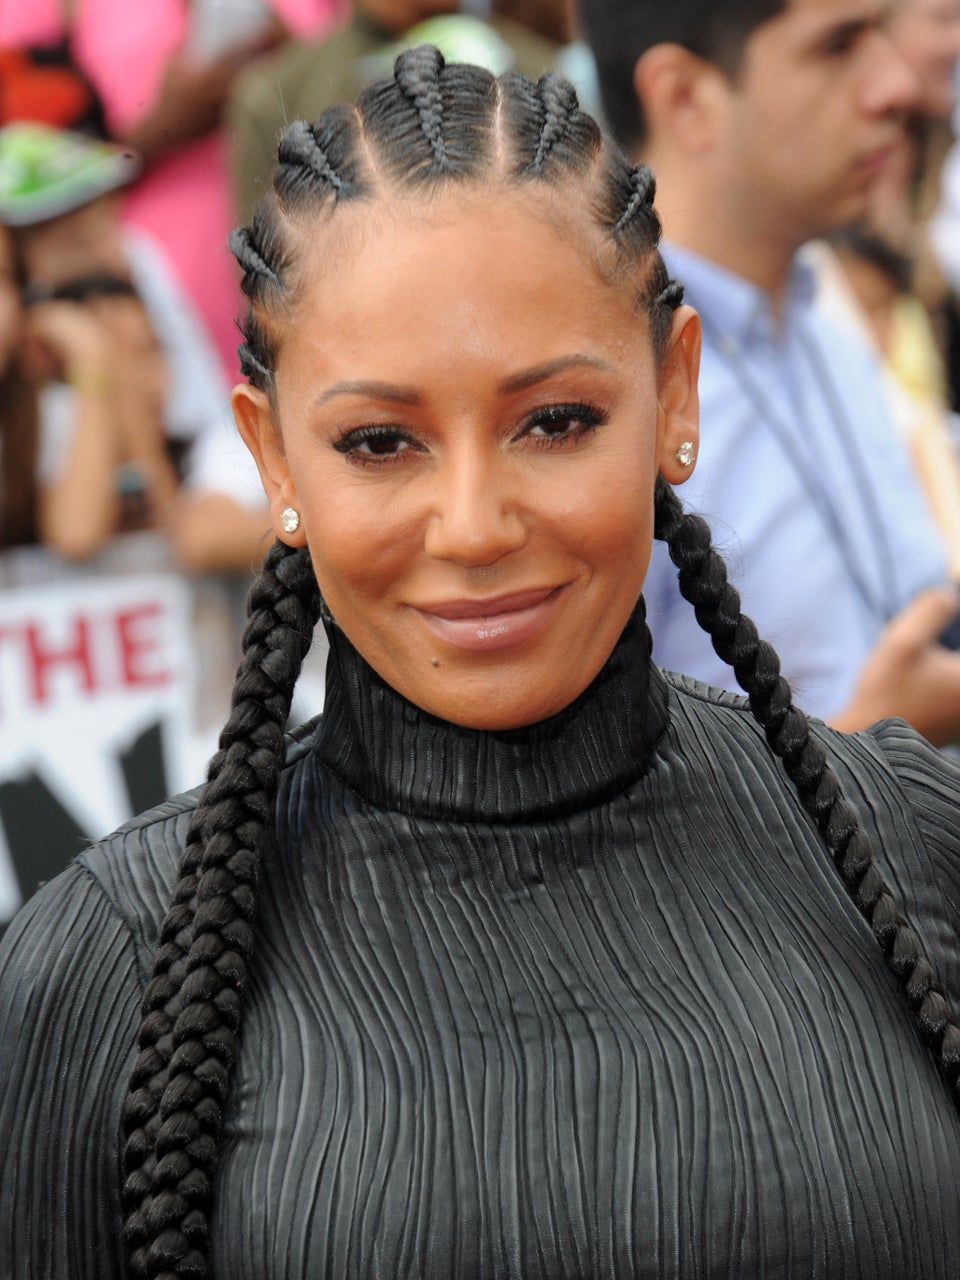 Court Denies Mel B's Request to Recover Alleged Sex Tapes From Estranged Husband Stephen Belafonte